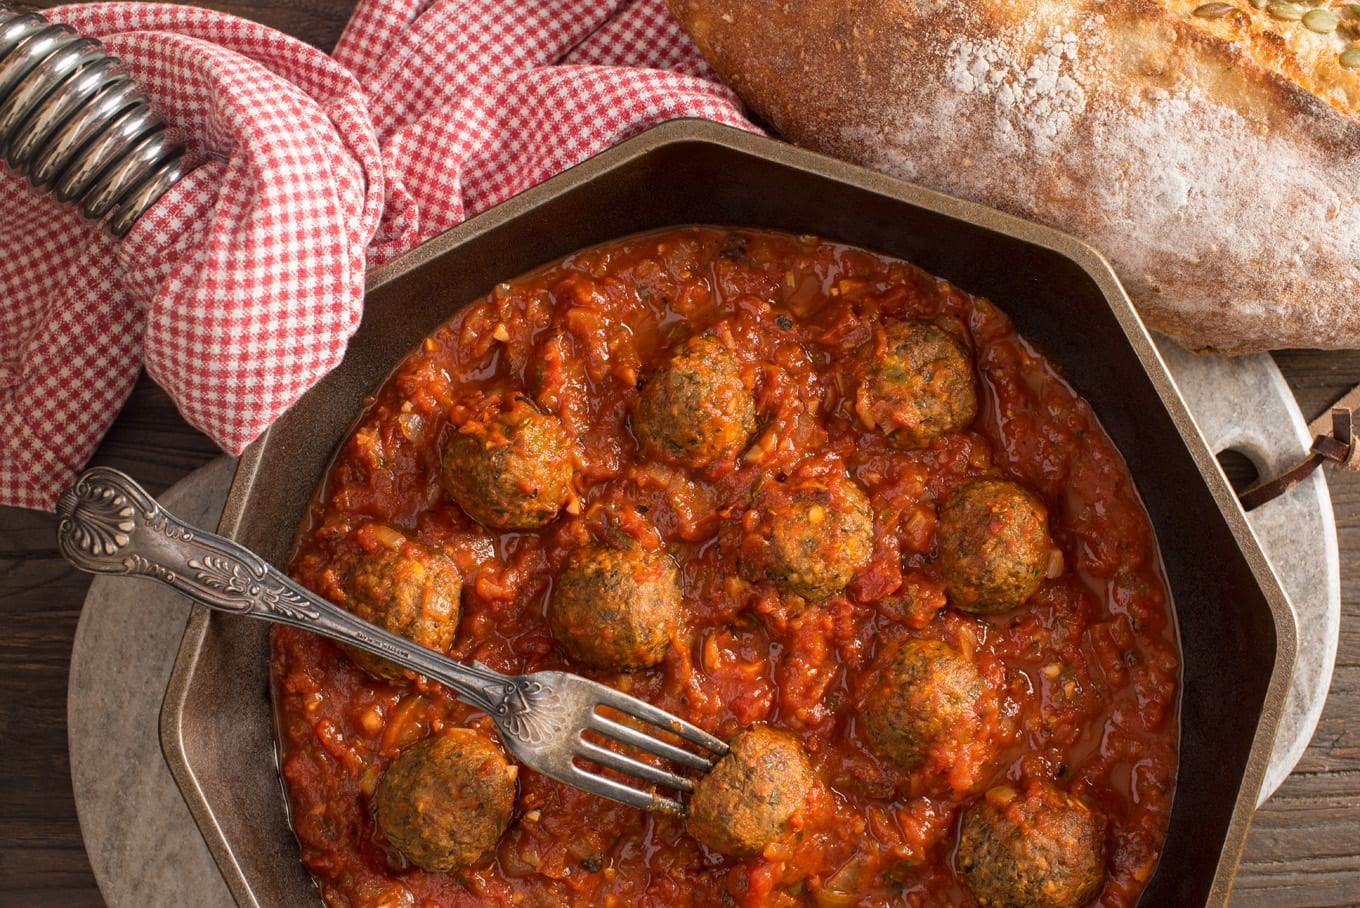 Italian style lentil meatballs with marinara sauce in pan next to loaf of bread